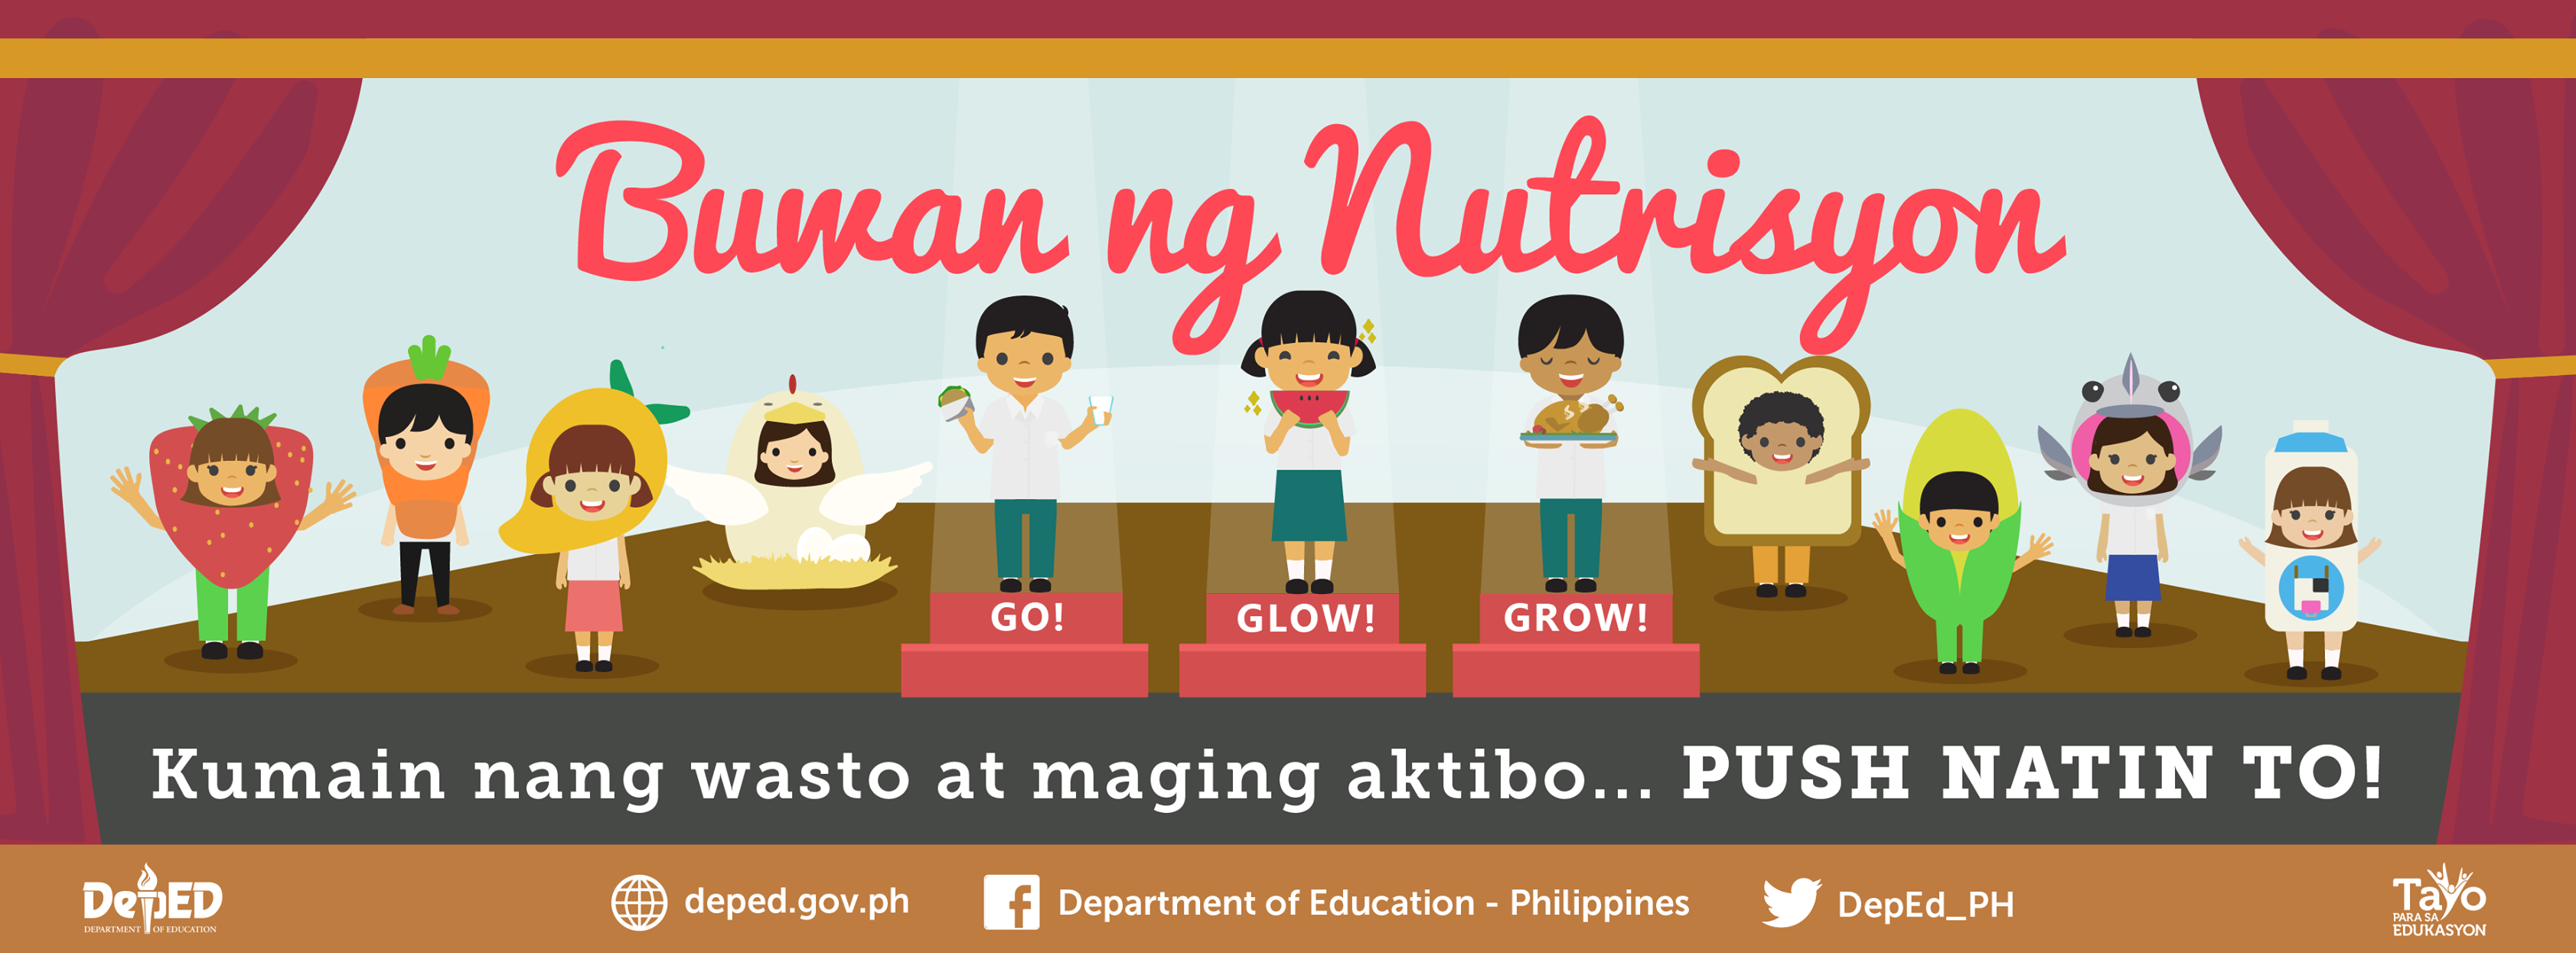 all schools to participate in the celebration of the 2019 nutrition month this july with the theme kumain nang wasto at maging aktibo push natin to